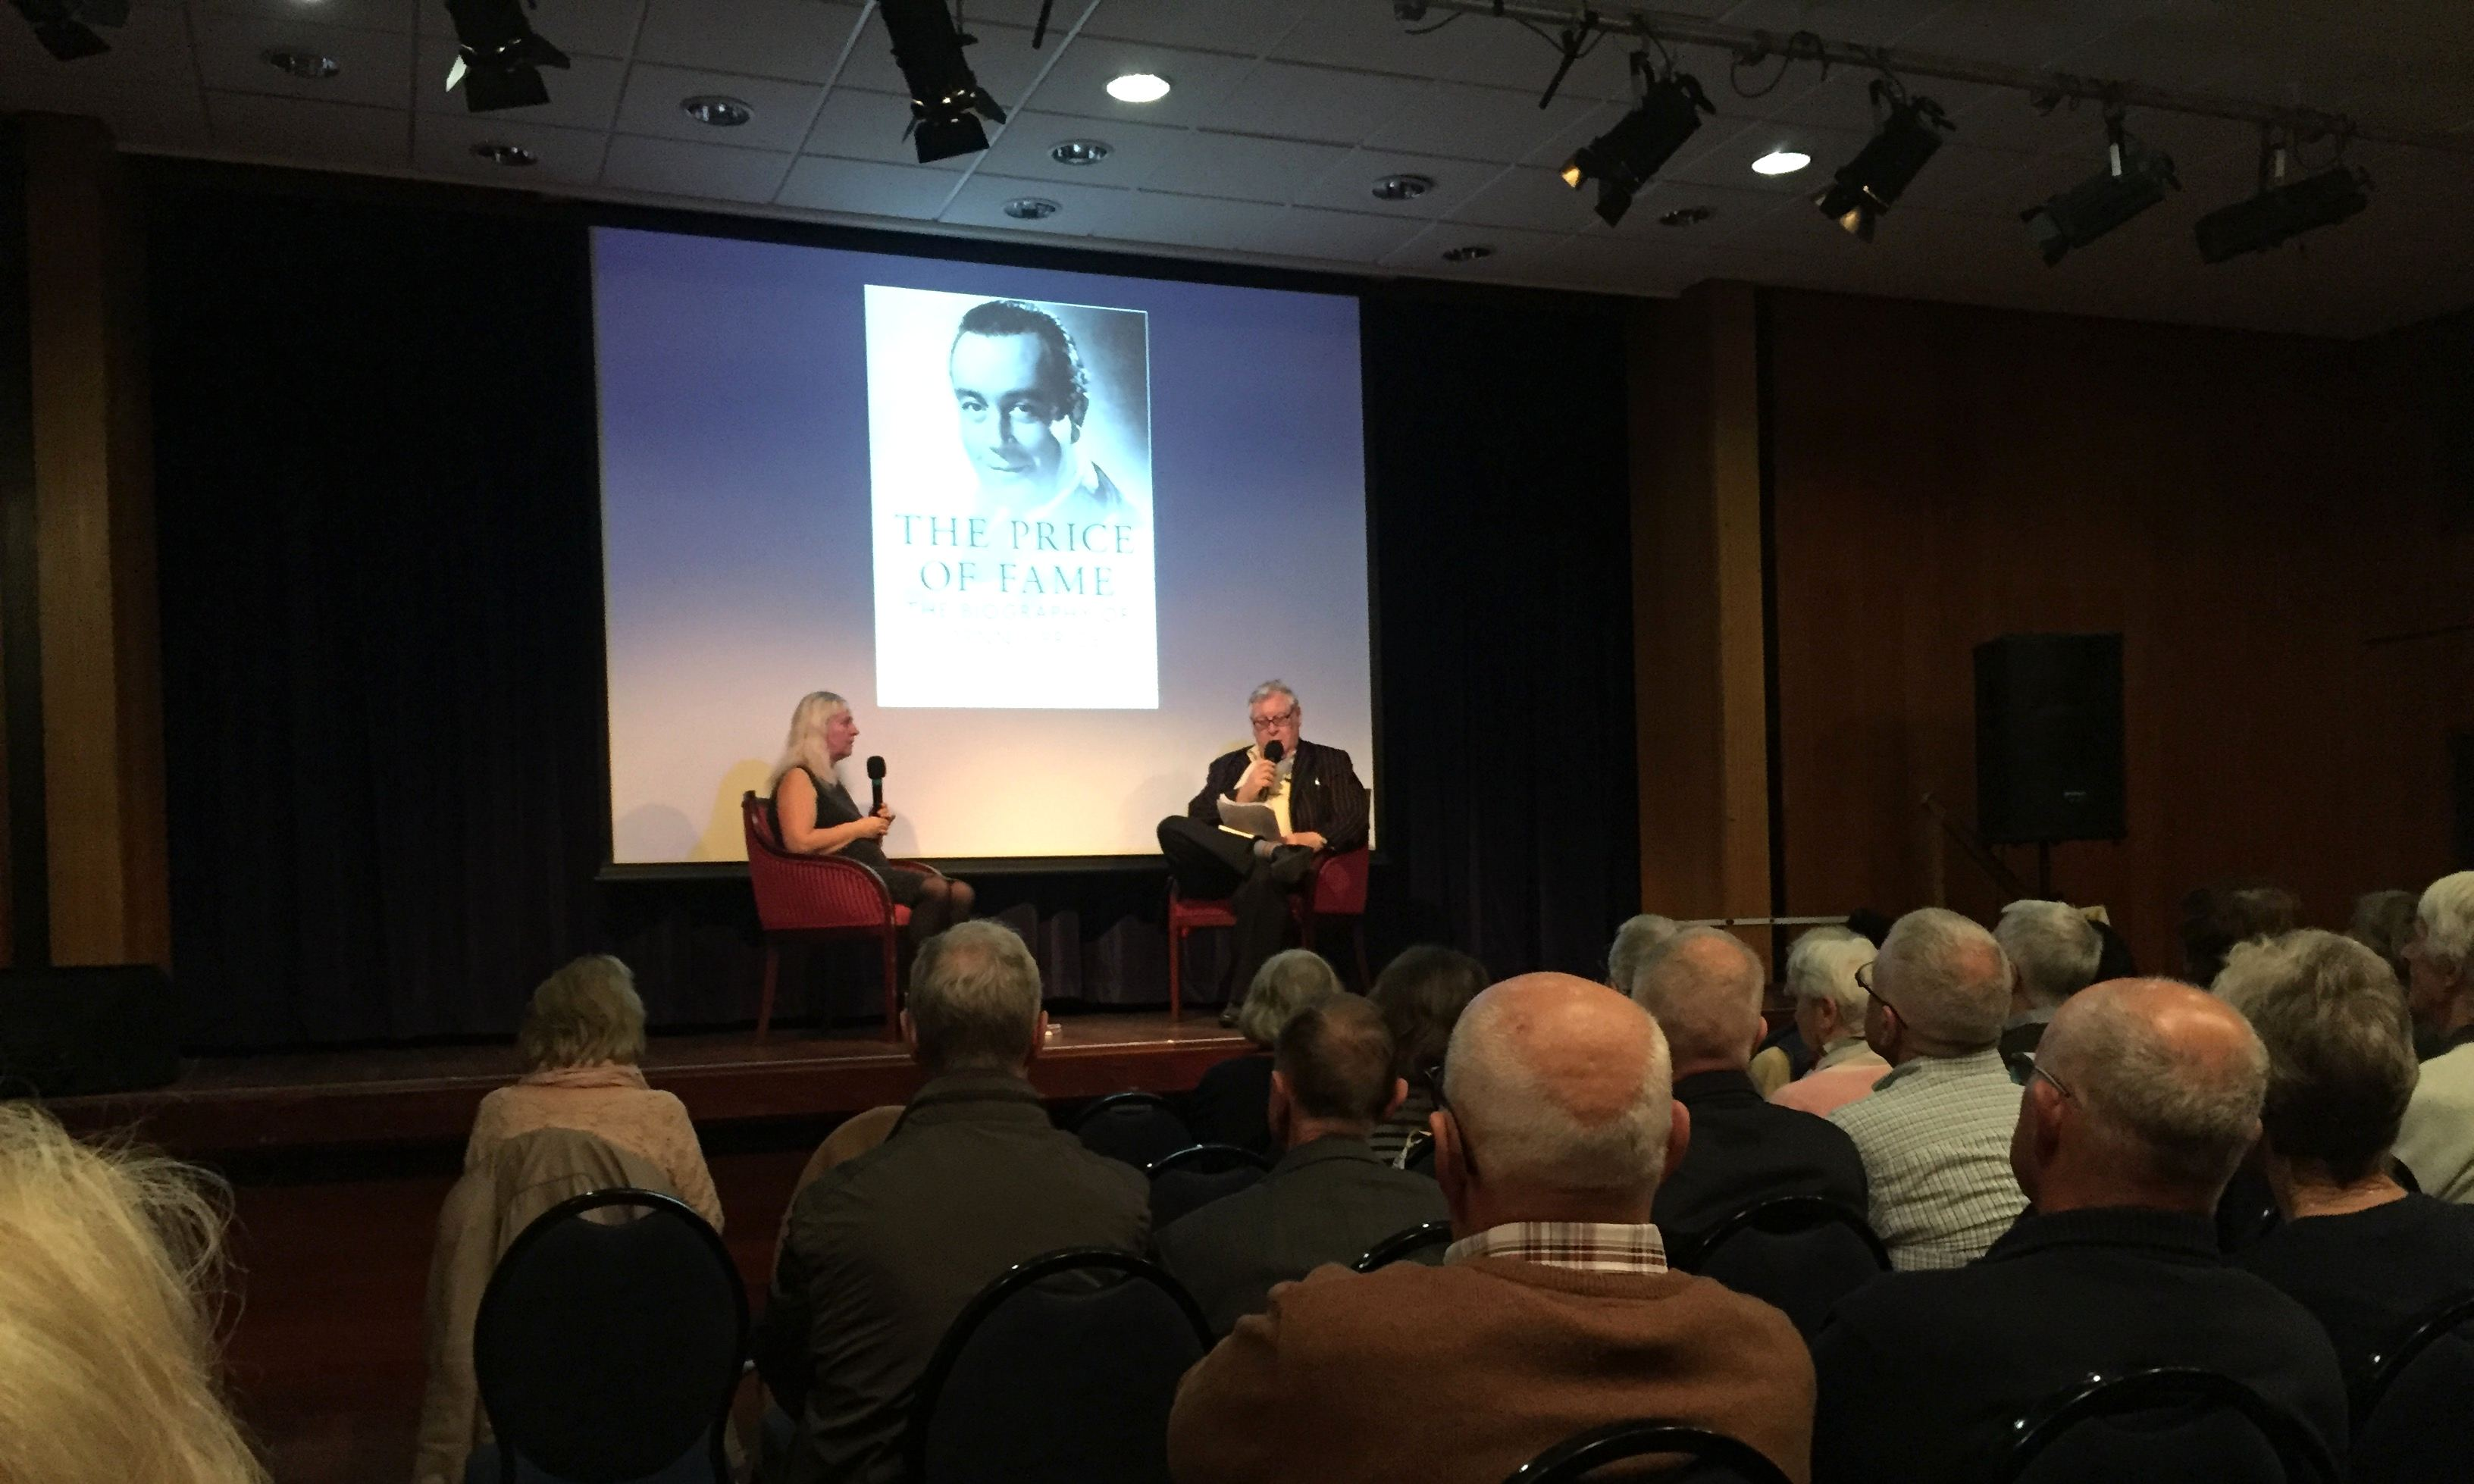 Author Elaine Parker discusses with Tony Flood the release of The Price of Fame, her new biography of Dennis Price, at the Underground Theatre, Eastbourne on 12th May, 2018